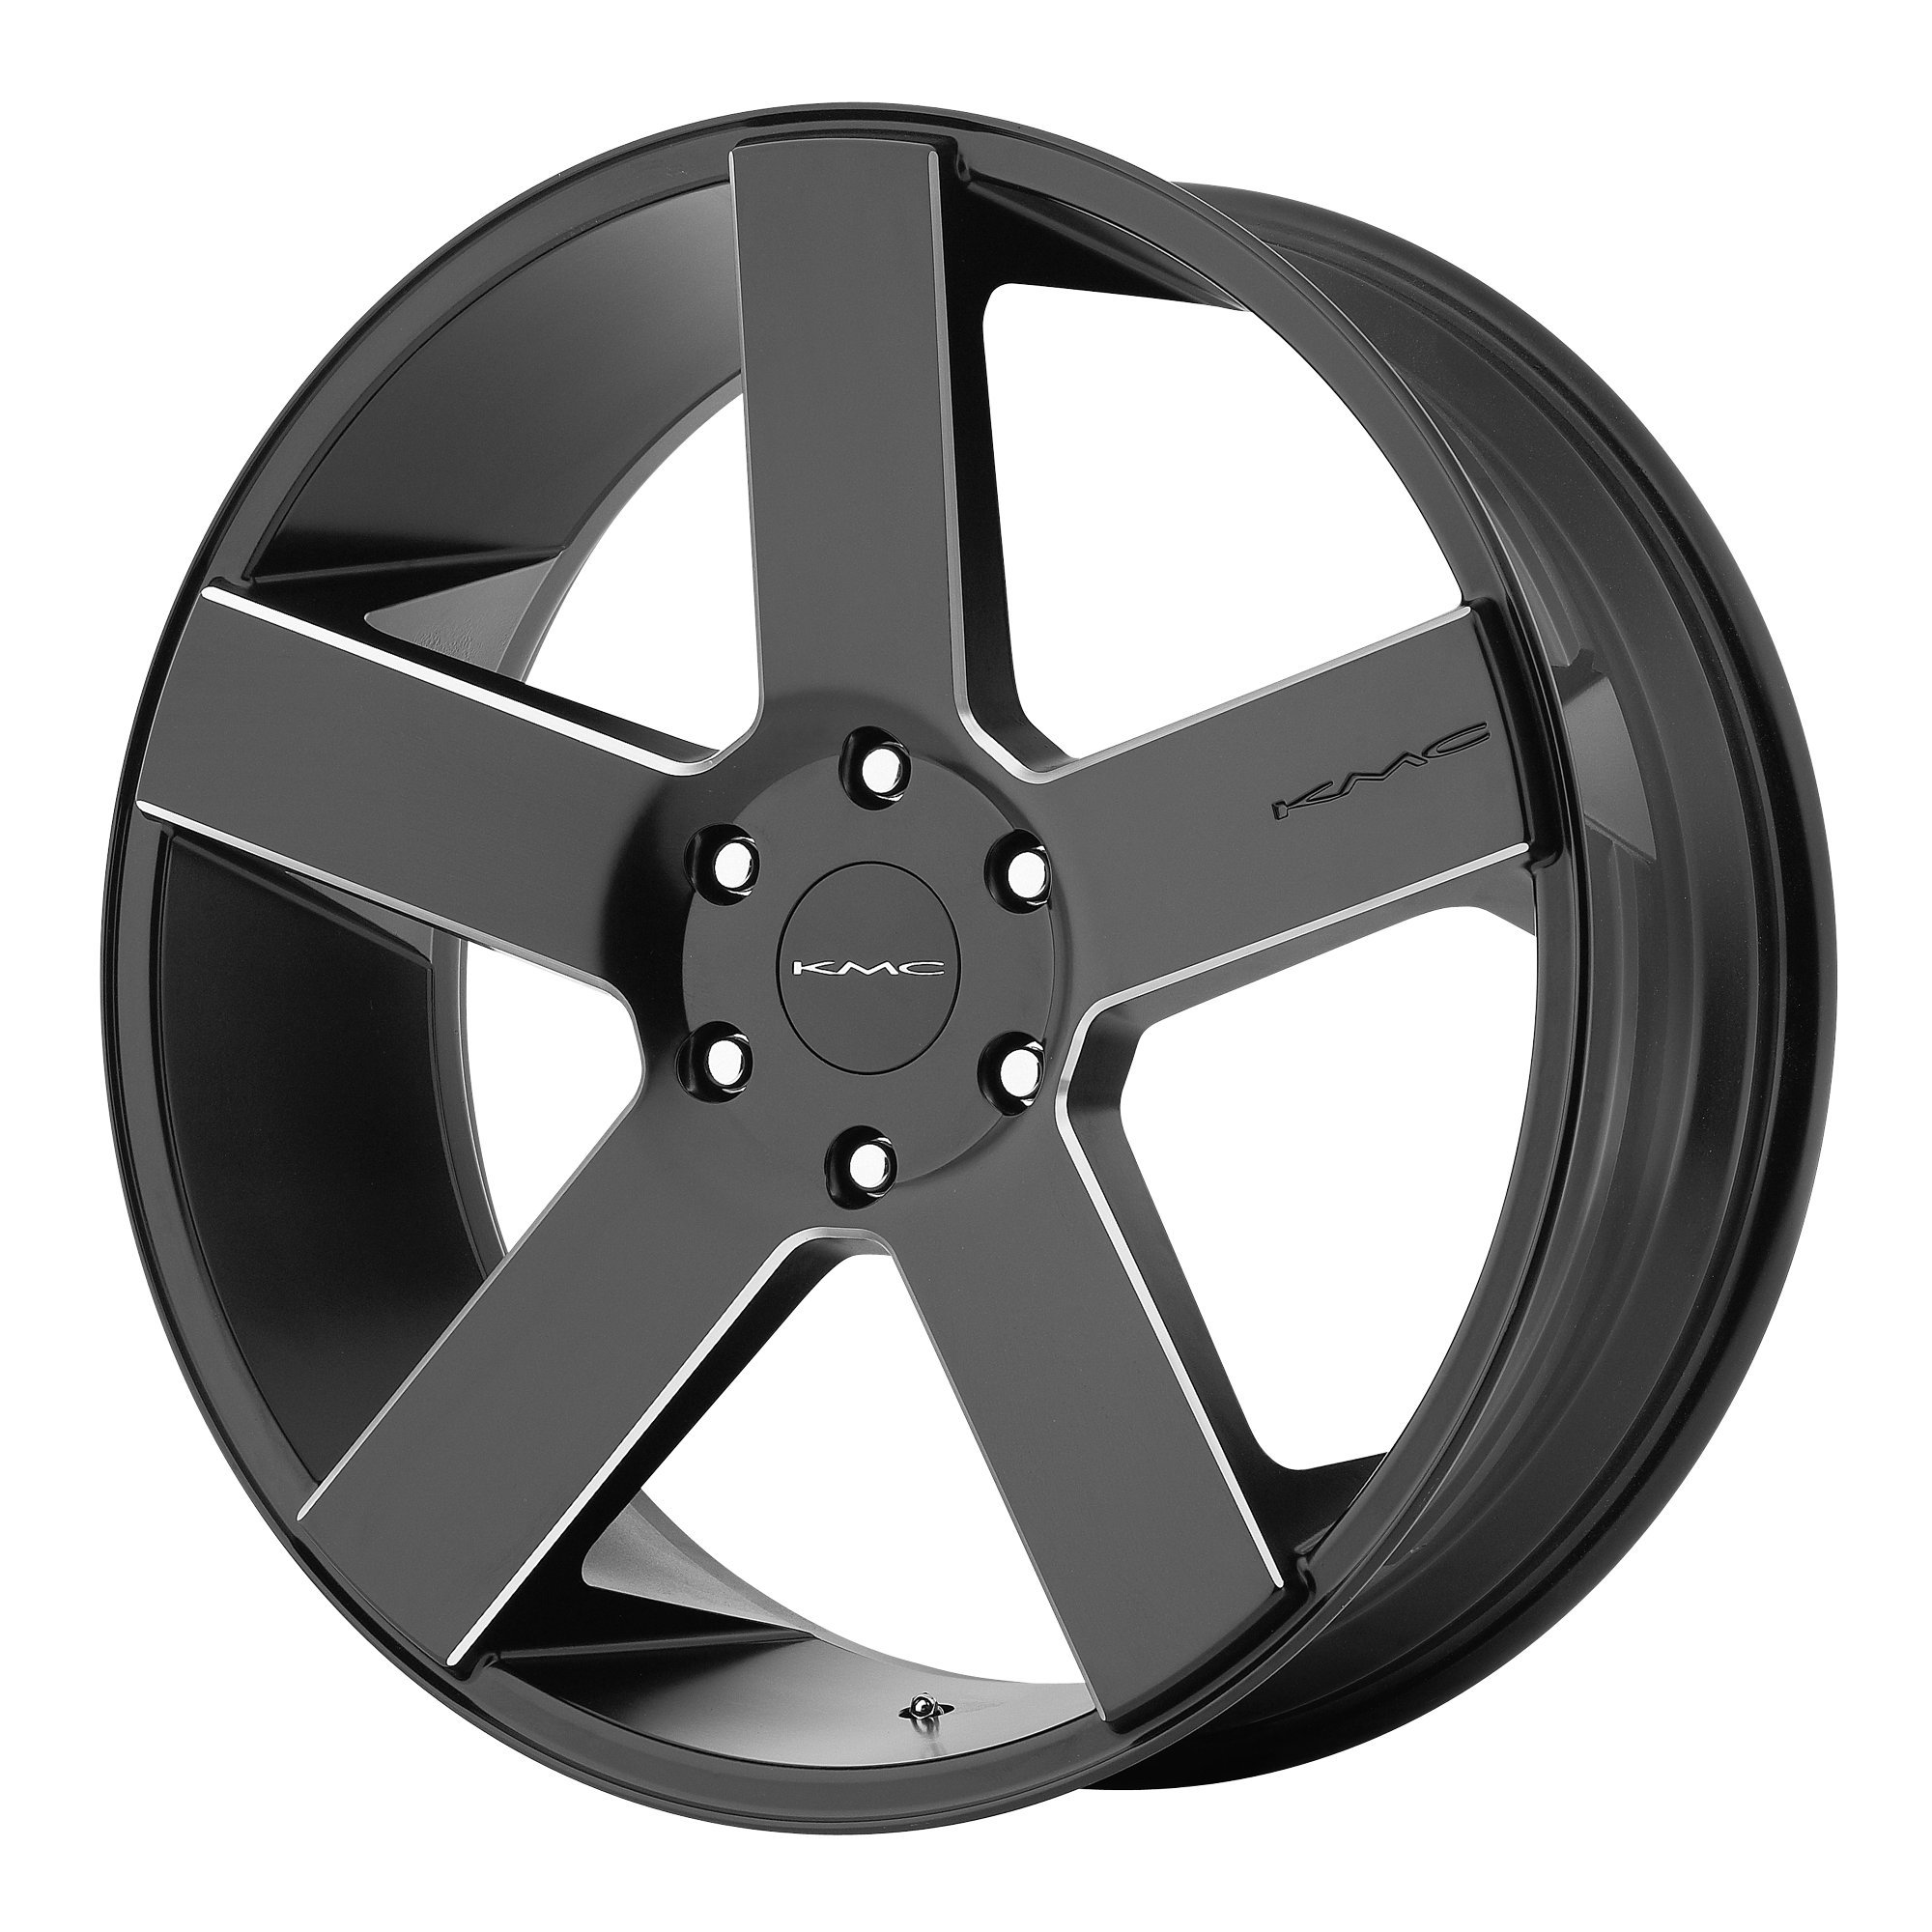 KMC Wheels KM690 MC 5 Satin Black Wheel With Milled Accents (20x8.5''/6x139.7mm, +25mm offset)